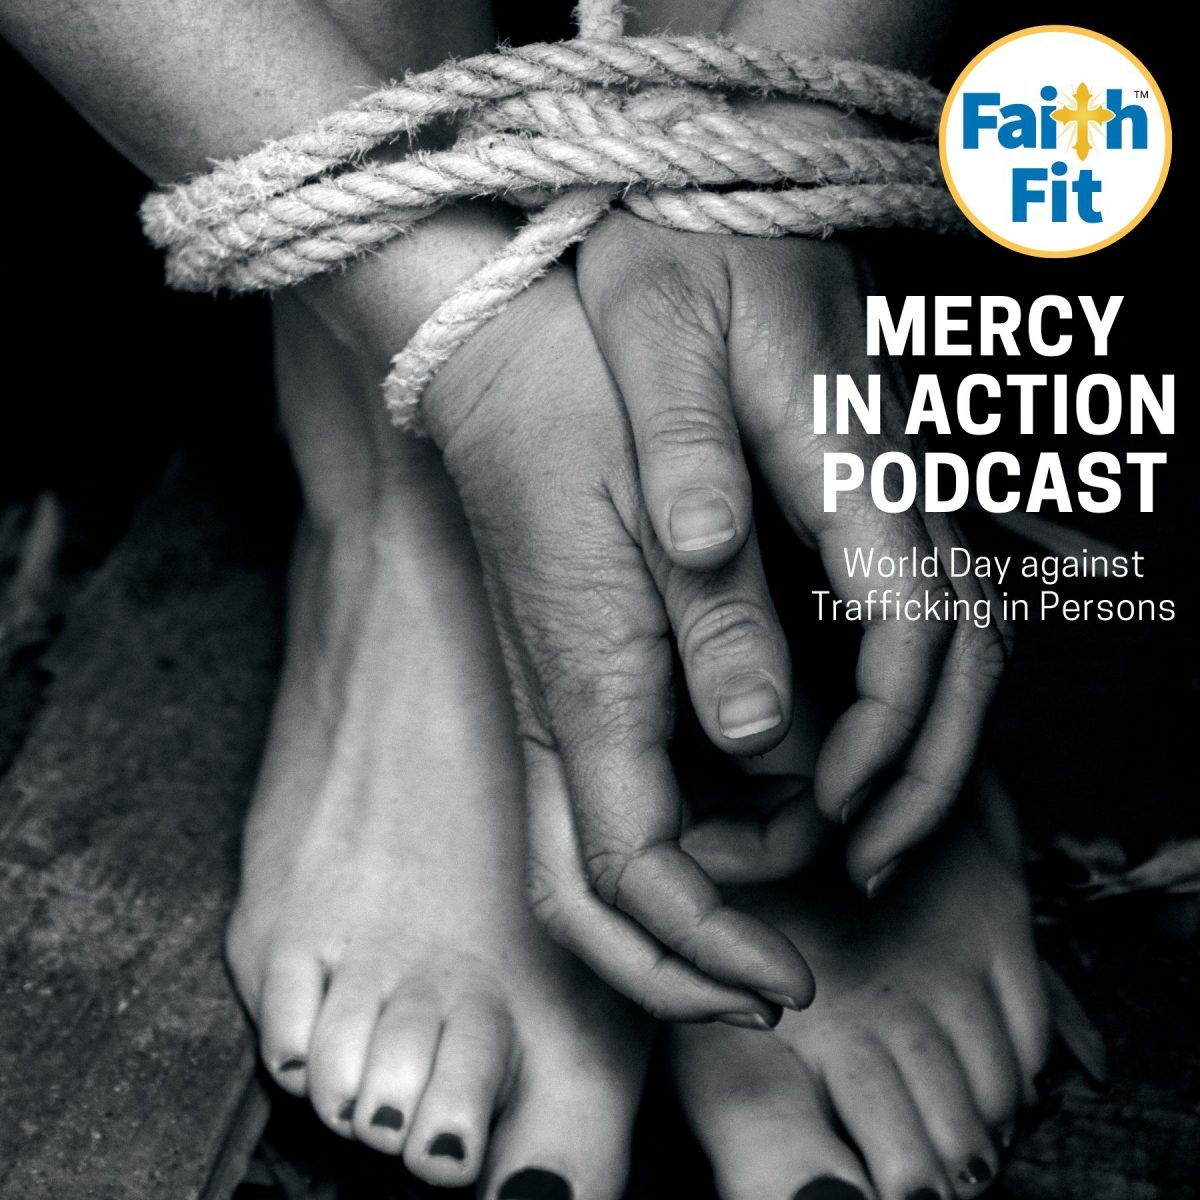 #9: World Day against Trafficking in Persons